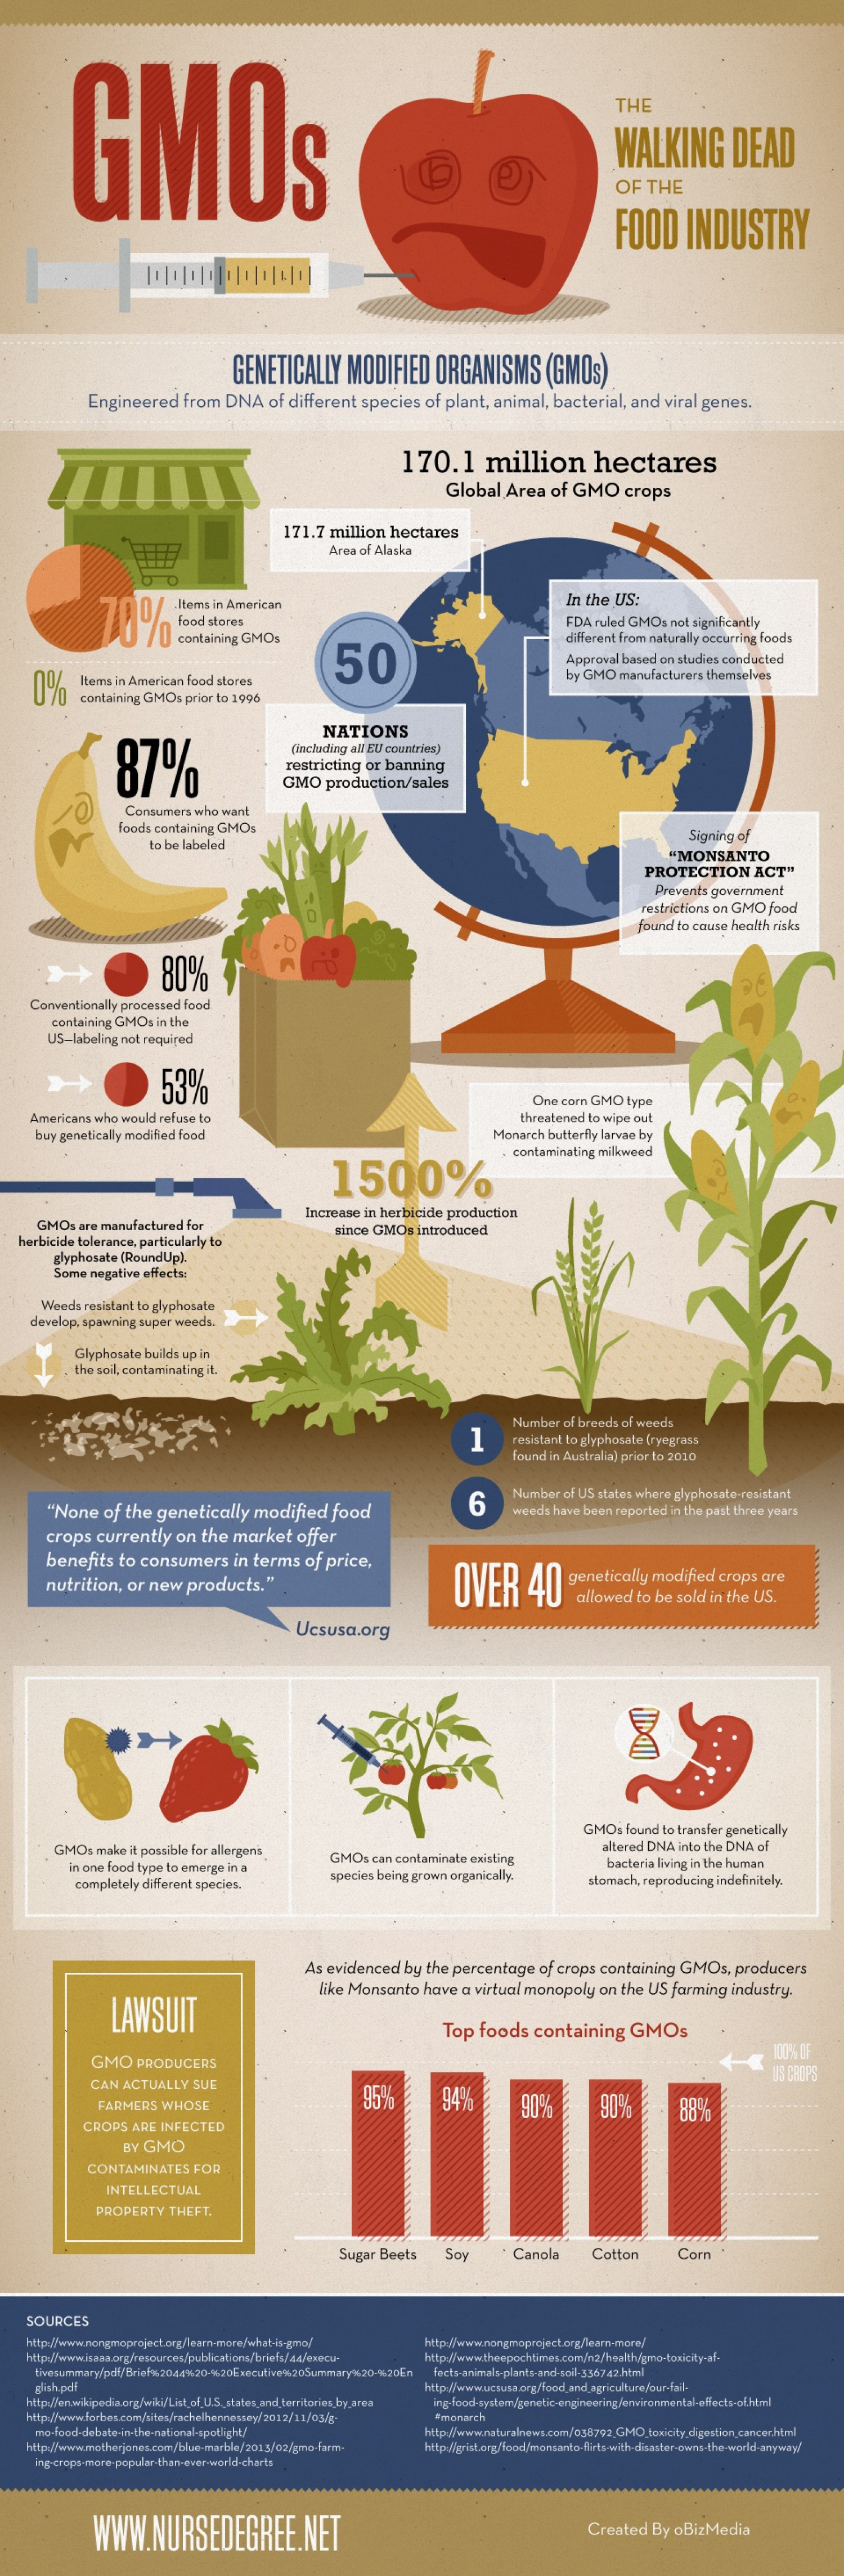 GMOs: The Walking Dead of The Food Industry Infographic